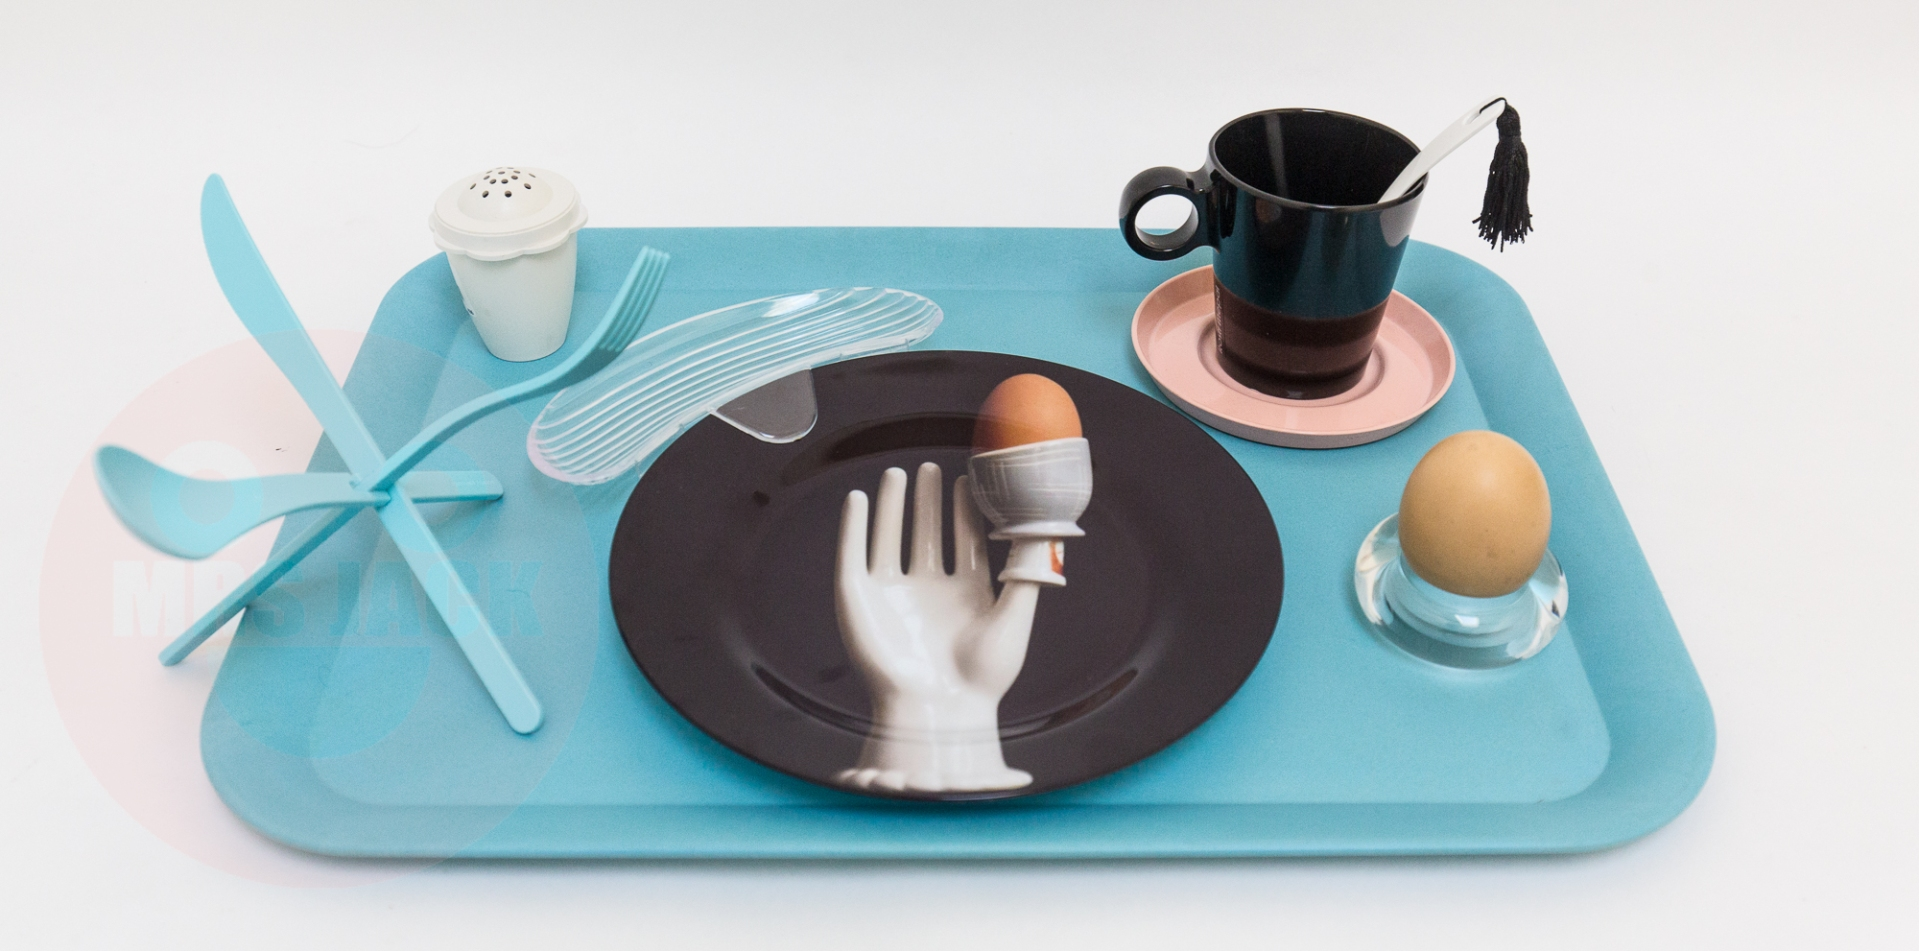 UNBREAKABLE BREAKFAST TRAY